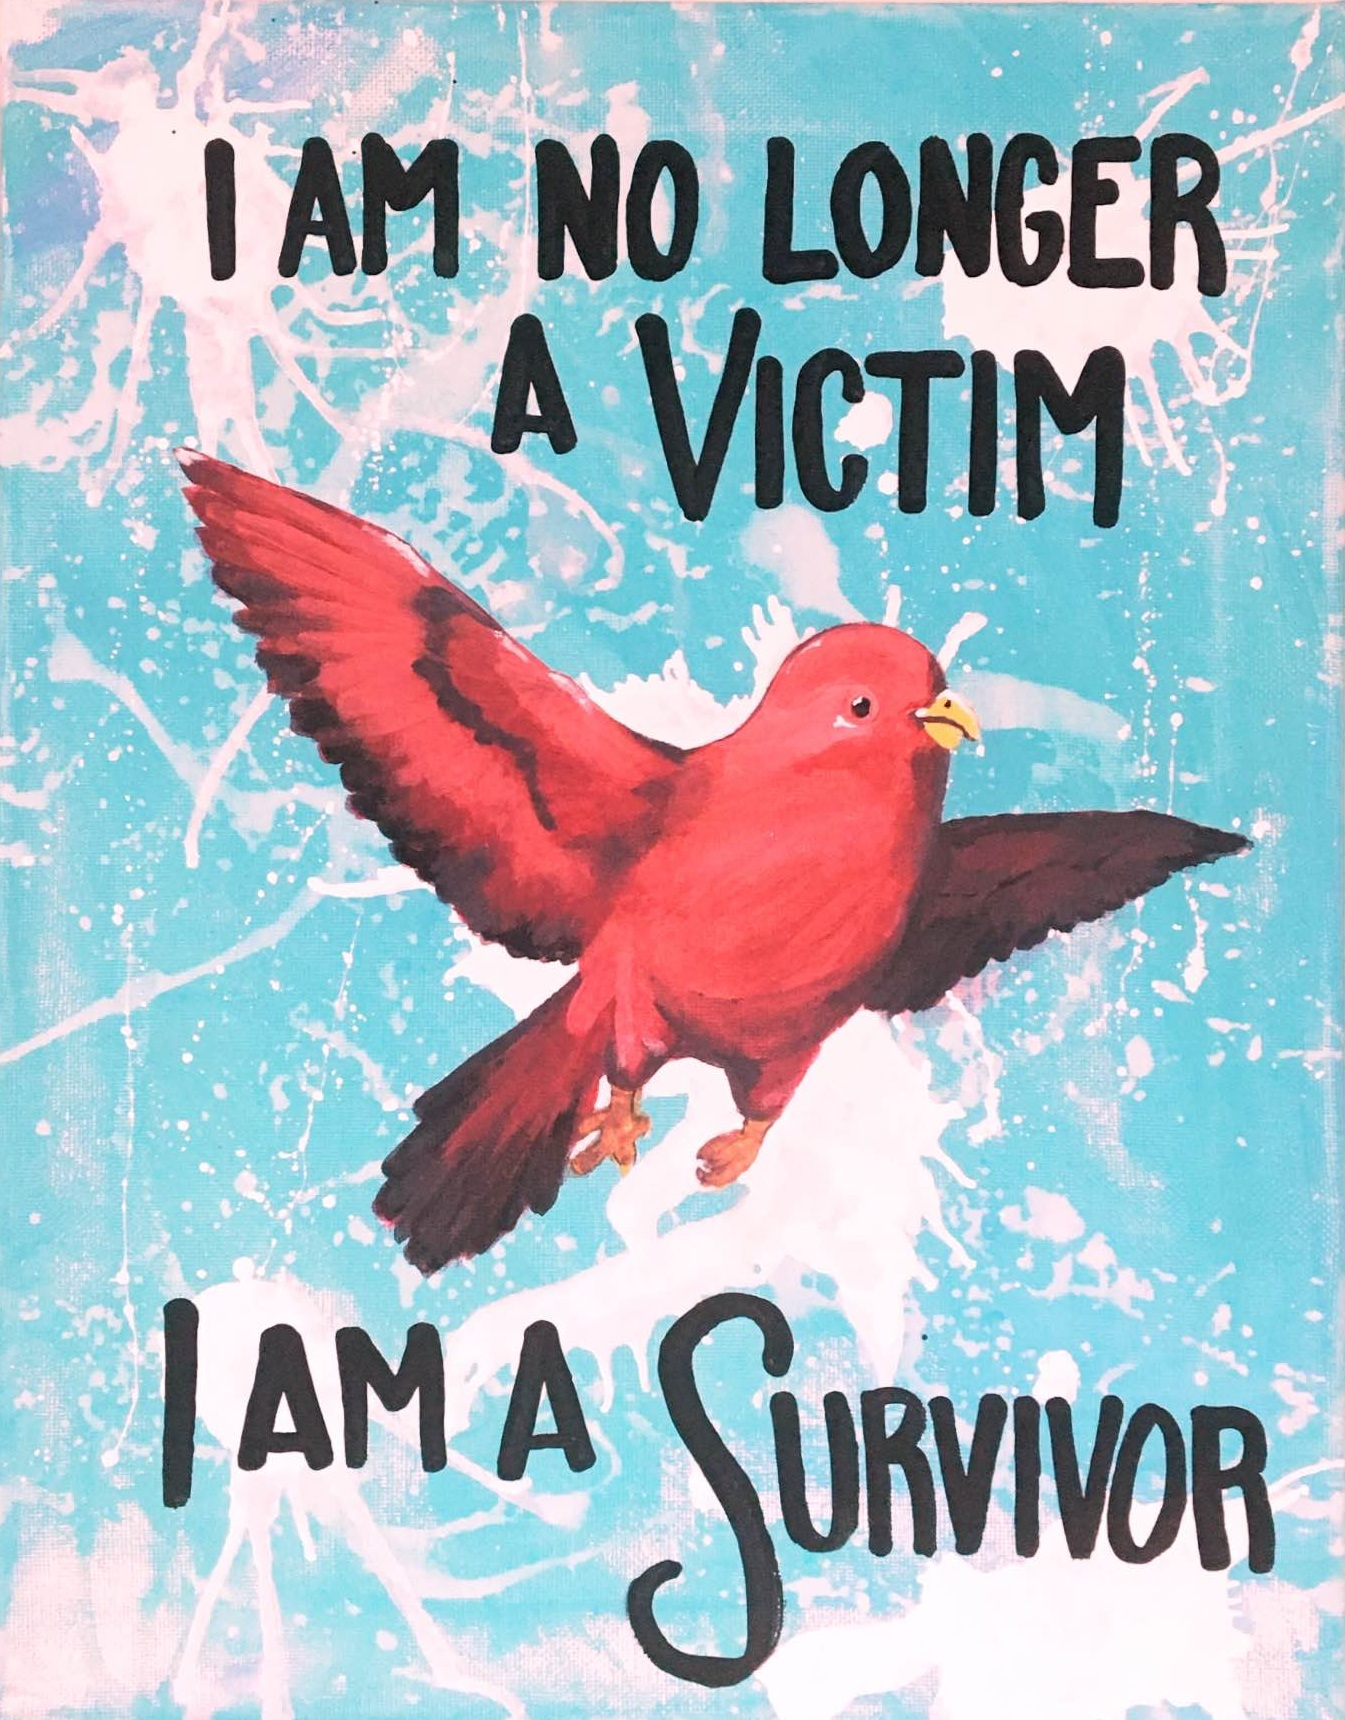 Sexual Assault - The sexual assault stories have been shared by folks who are survivors of sexual violence. Please take care reading these stories if you are a survivor yourself.